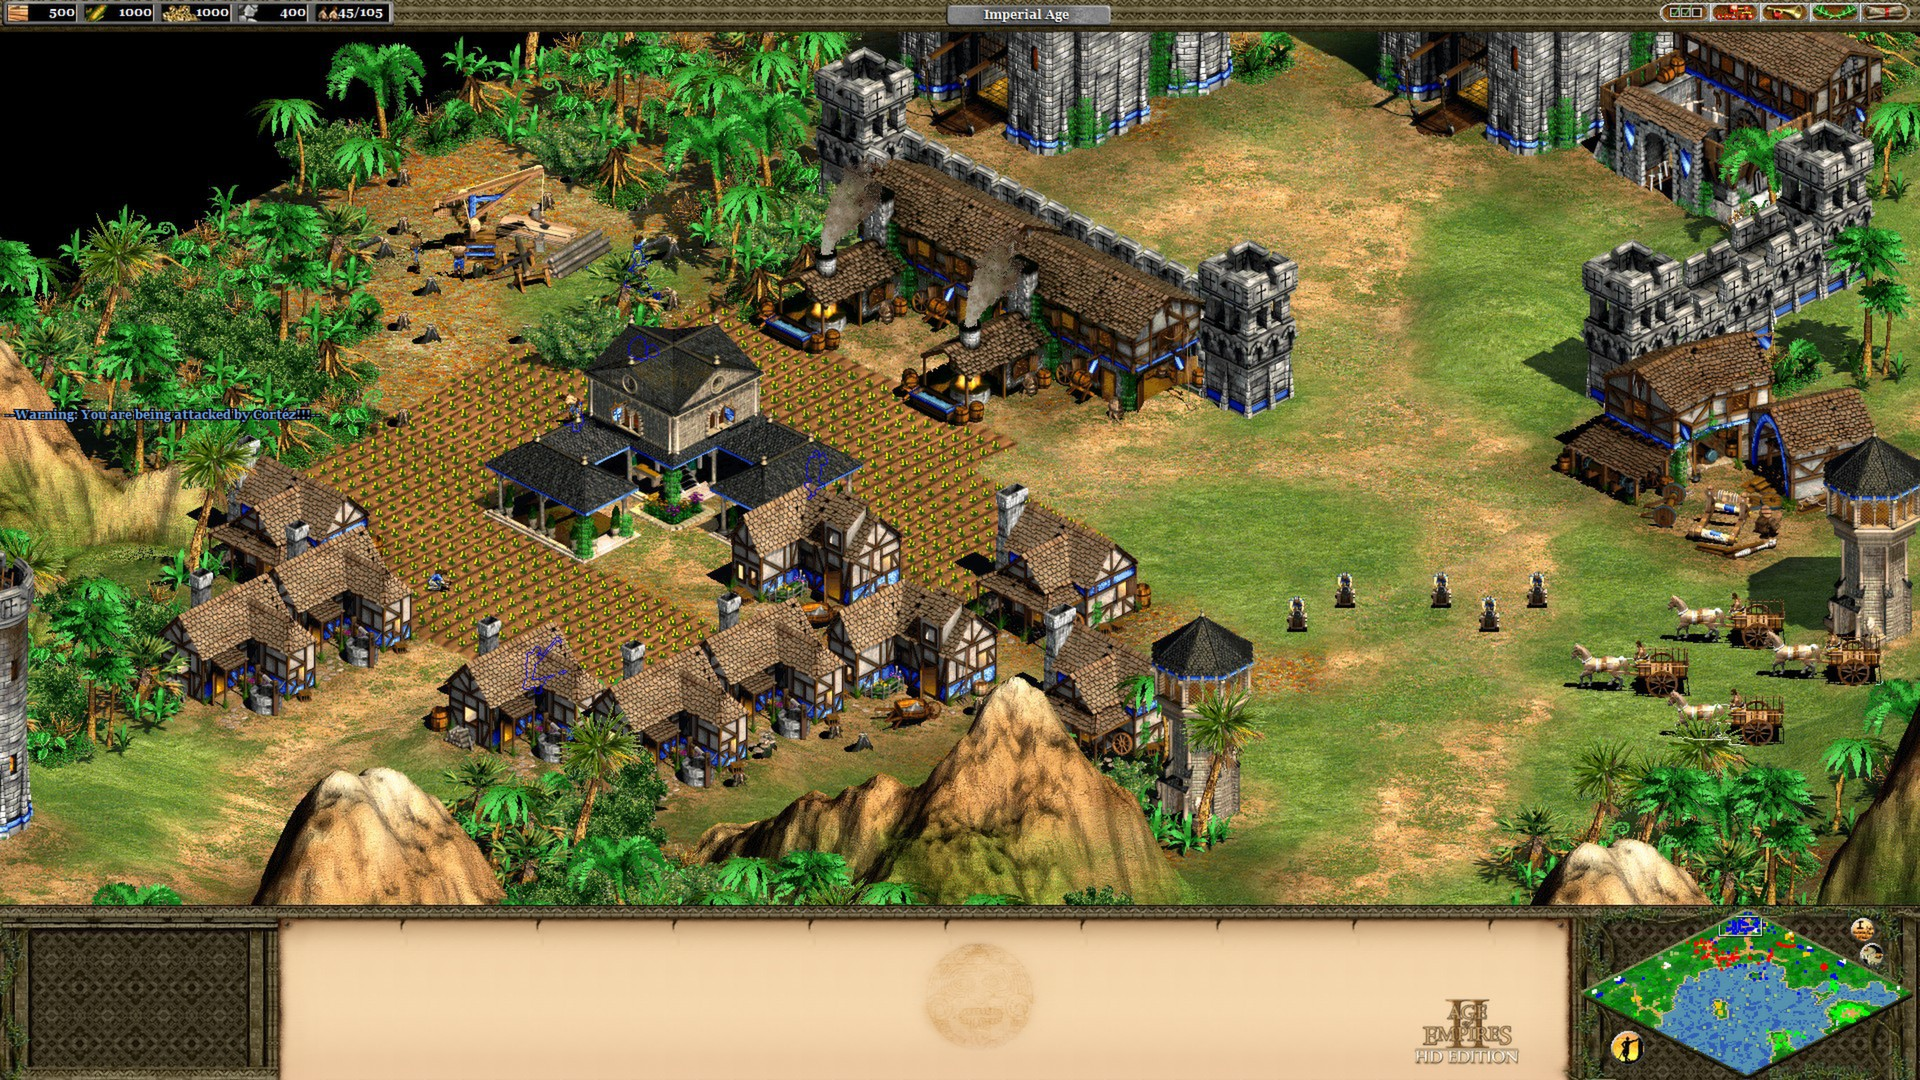 Find the best gaming PC for AoE22013